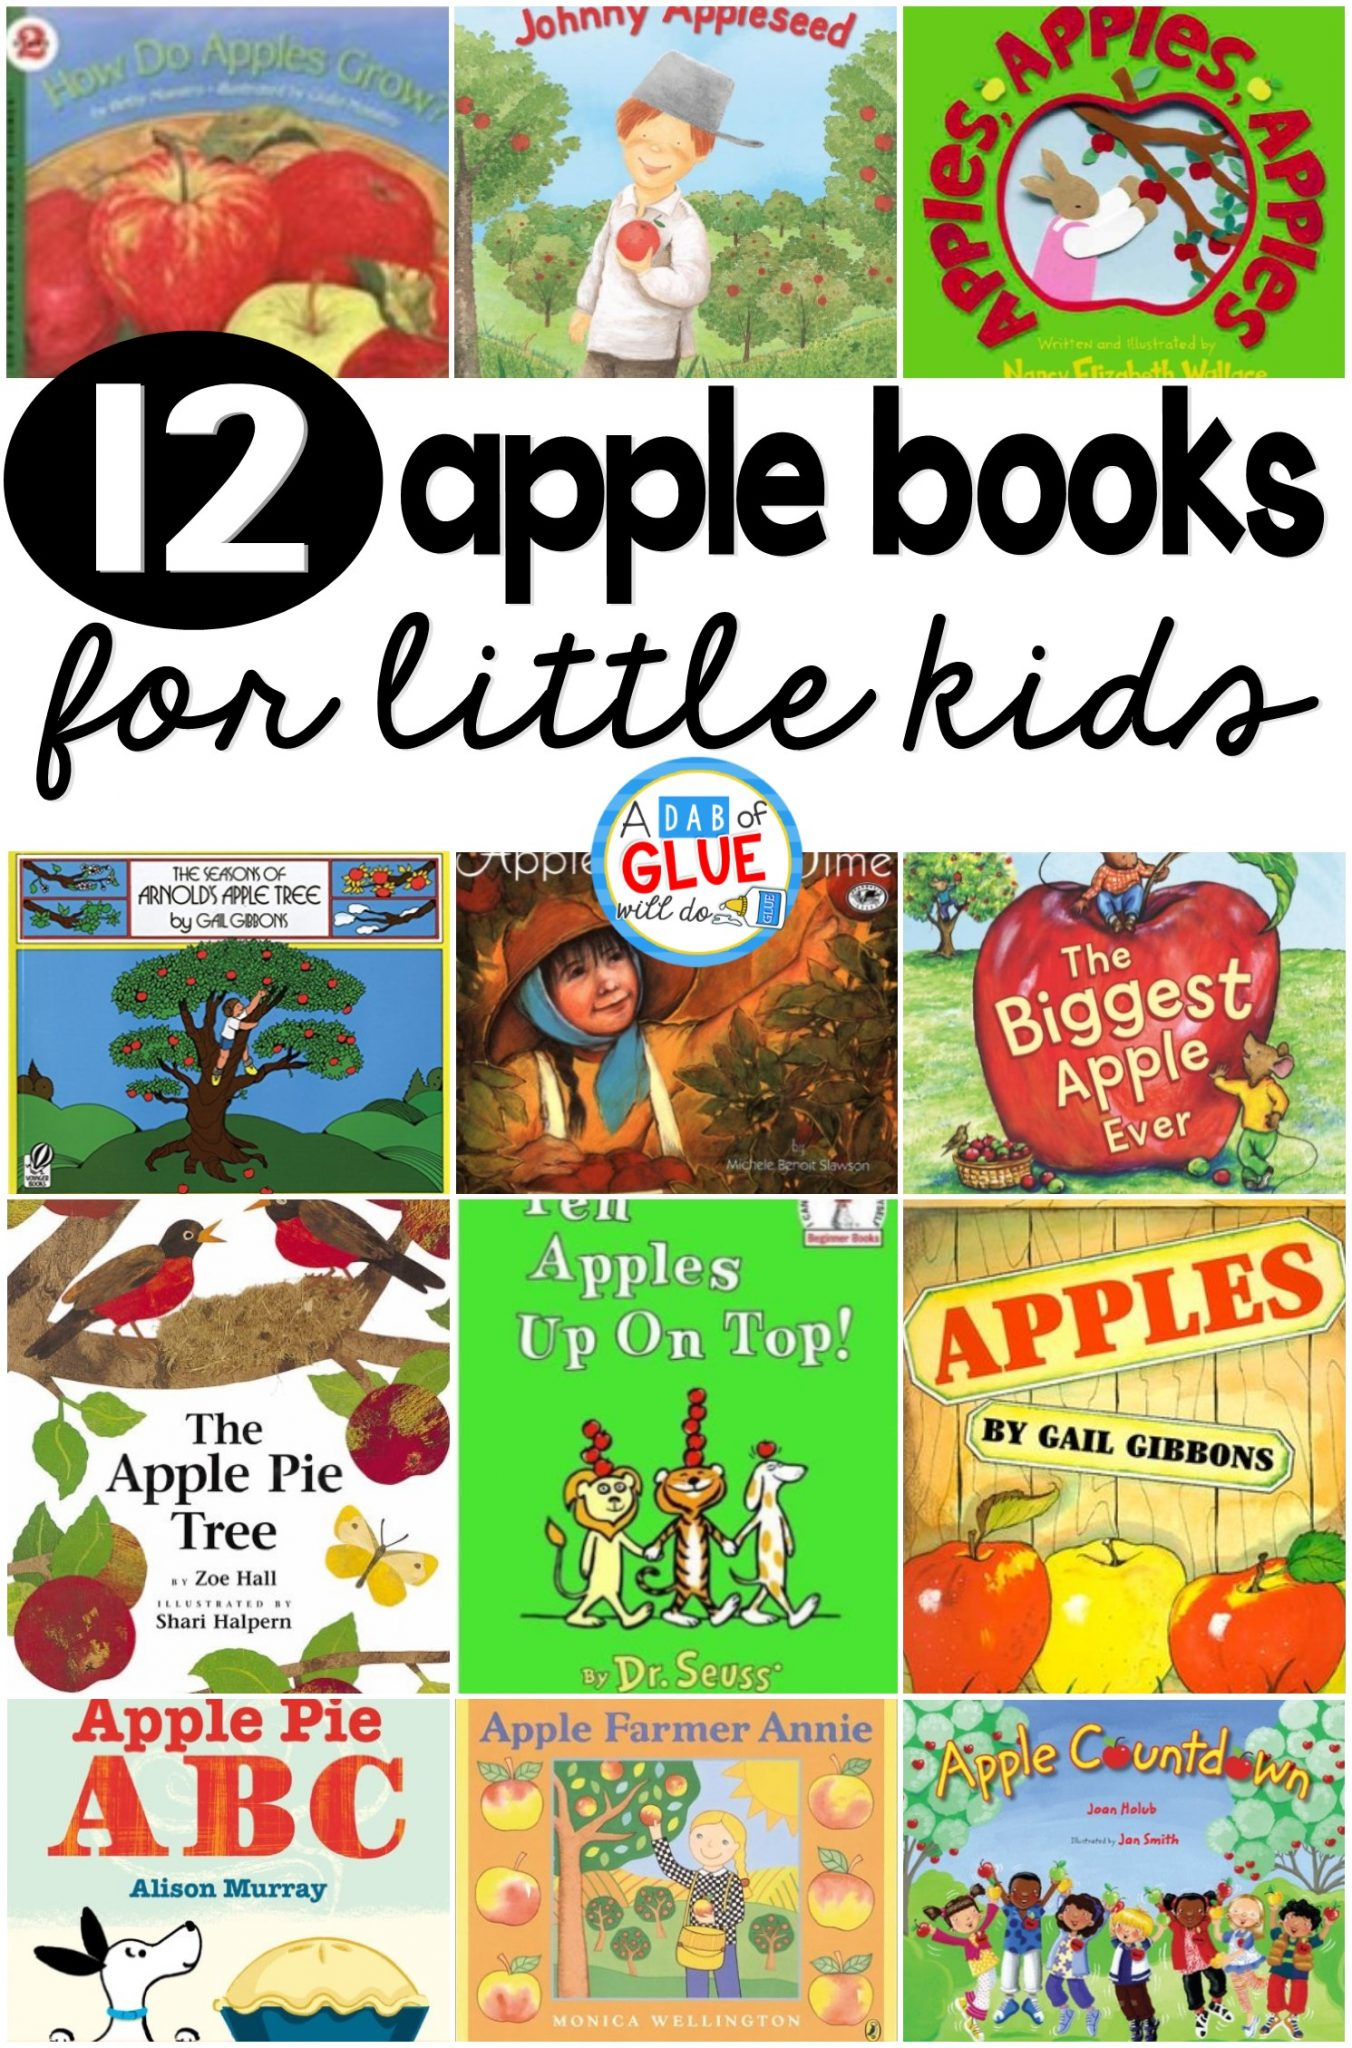 12 Apple Books for Little Kids